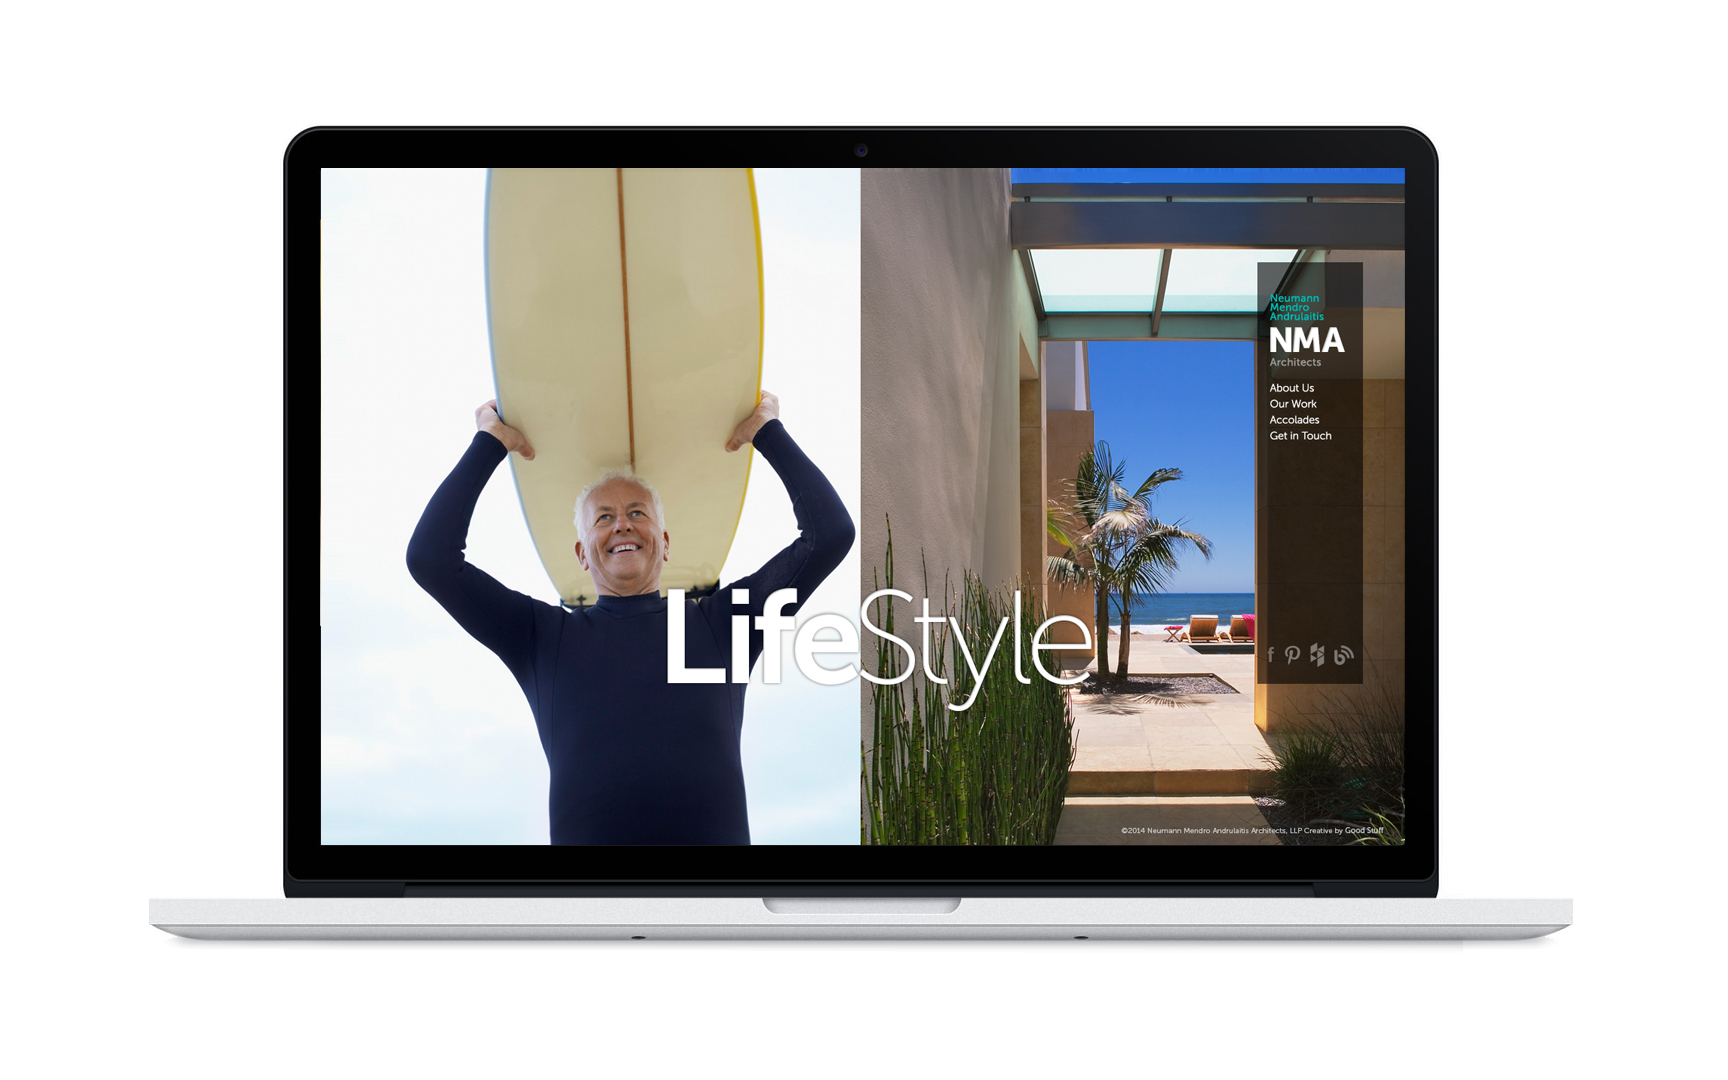 Good Stuff Partners, a branding agency in San Francisco, revamped architect firm NMA's brand strategy which helped them increase their digital presence.